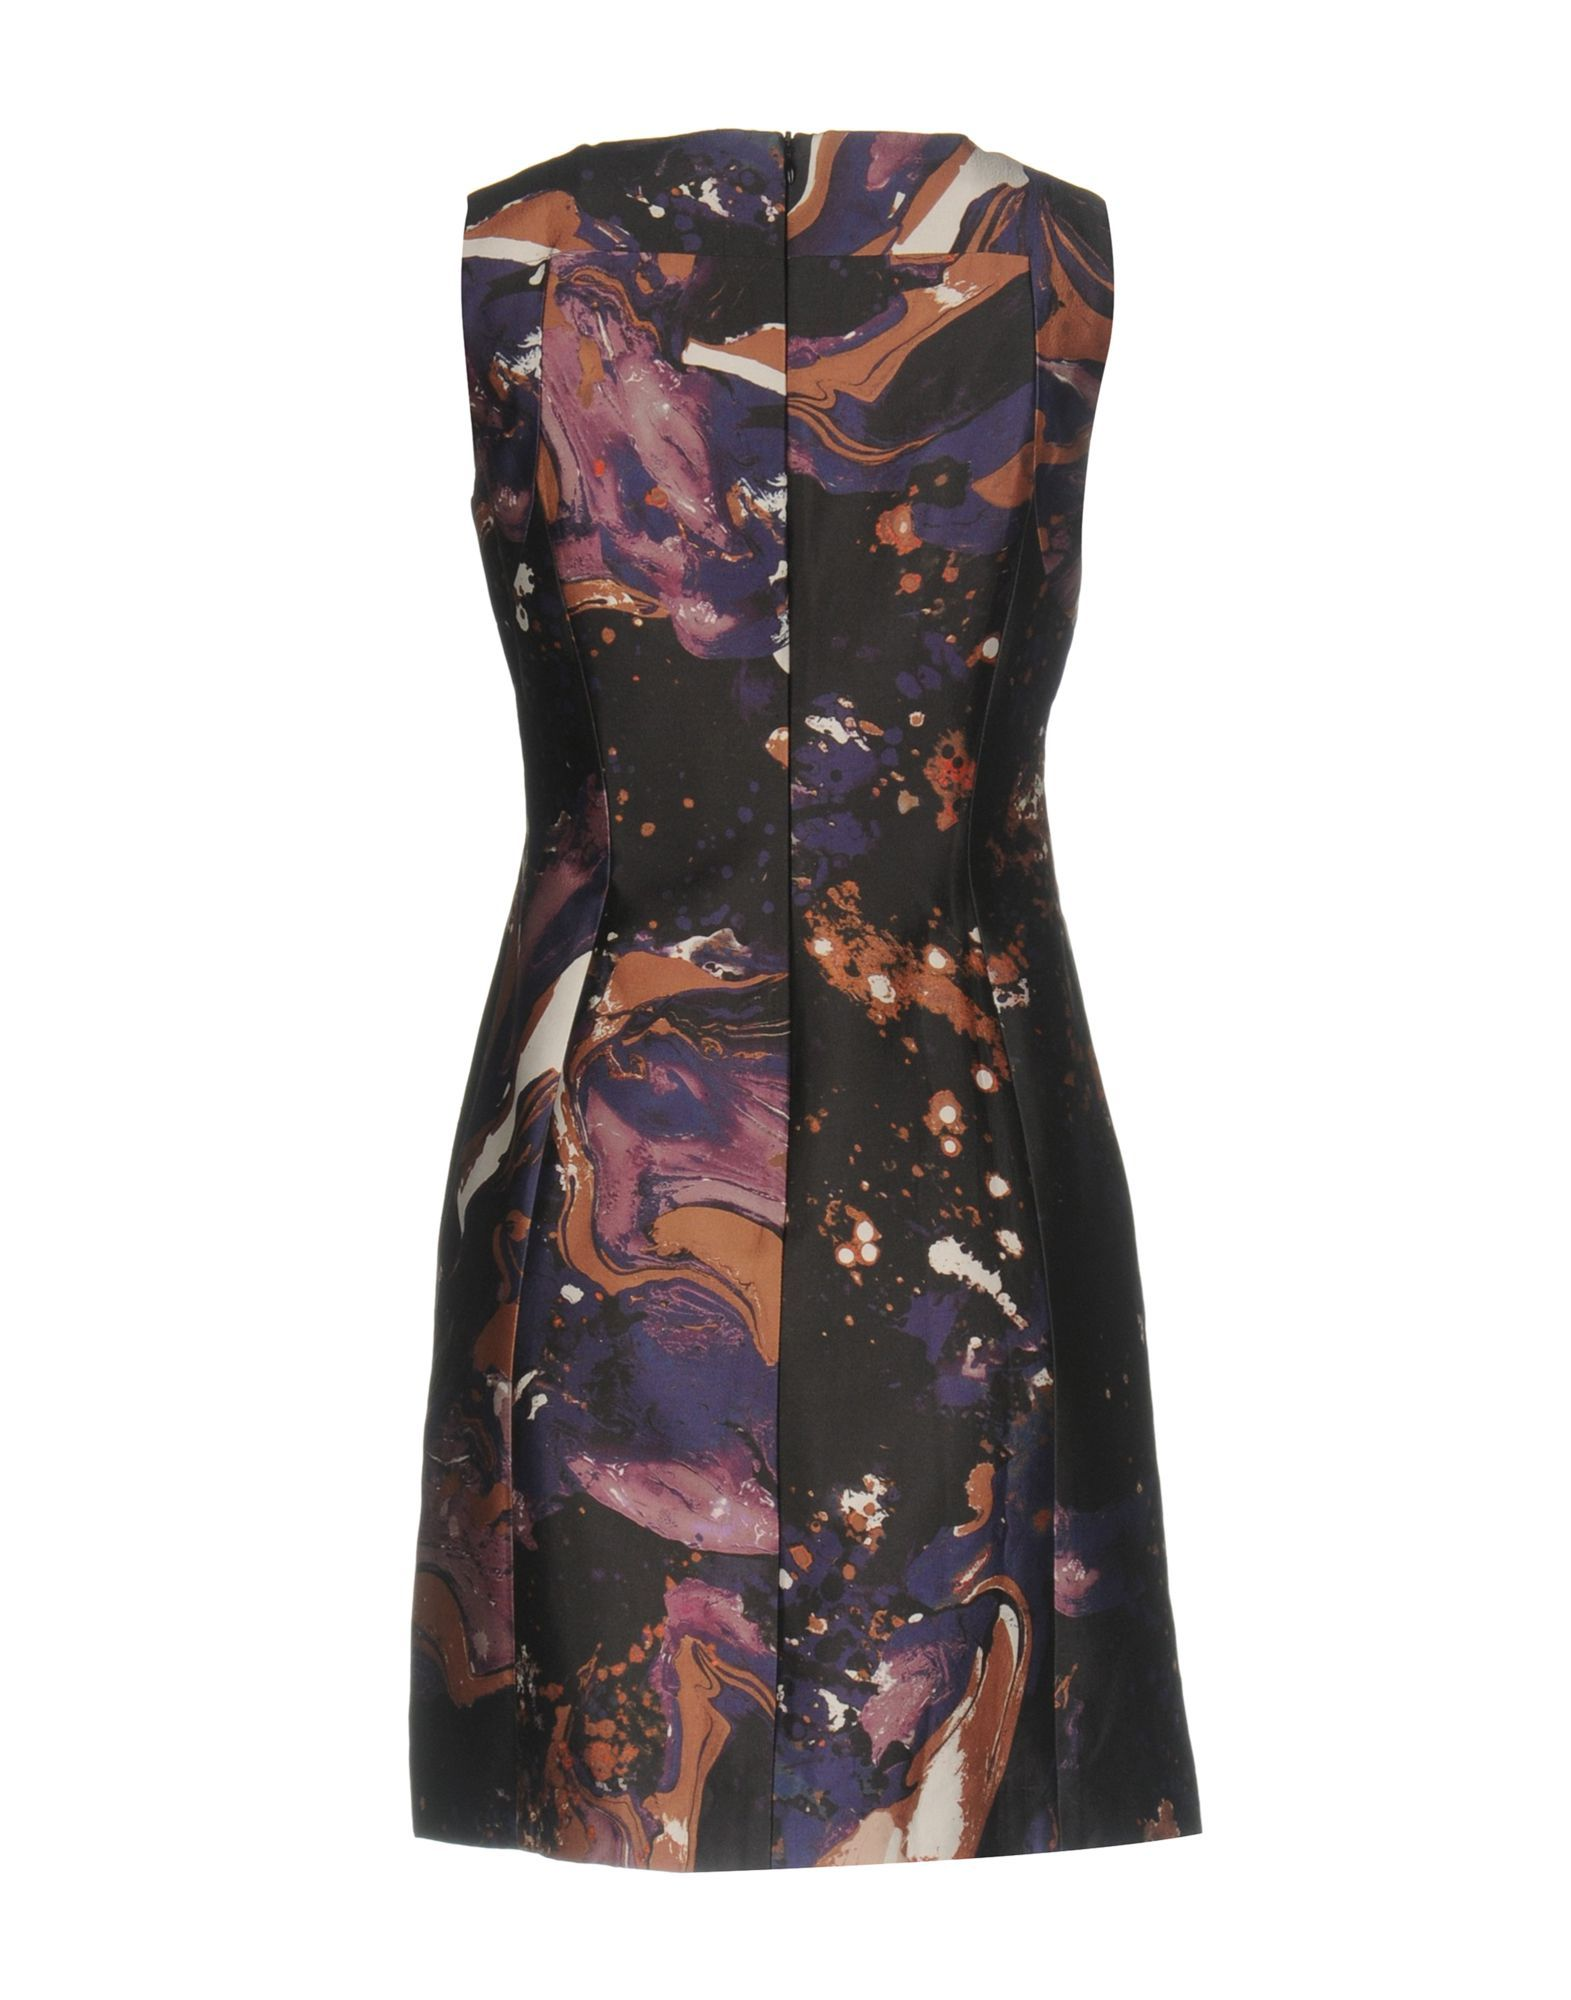 Karen Millen Purple Pattern Cotton Sleeveless Dress